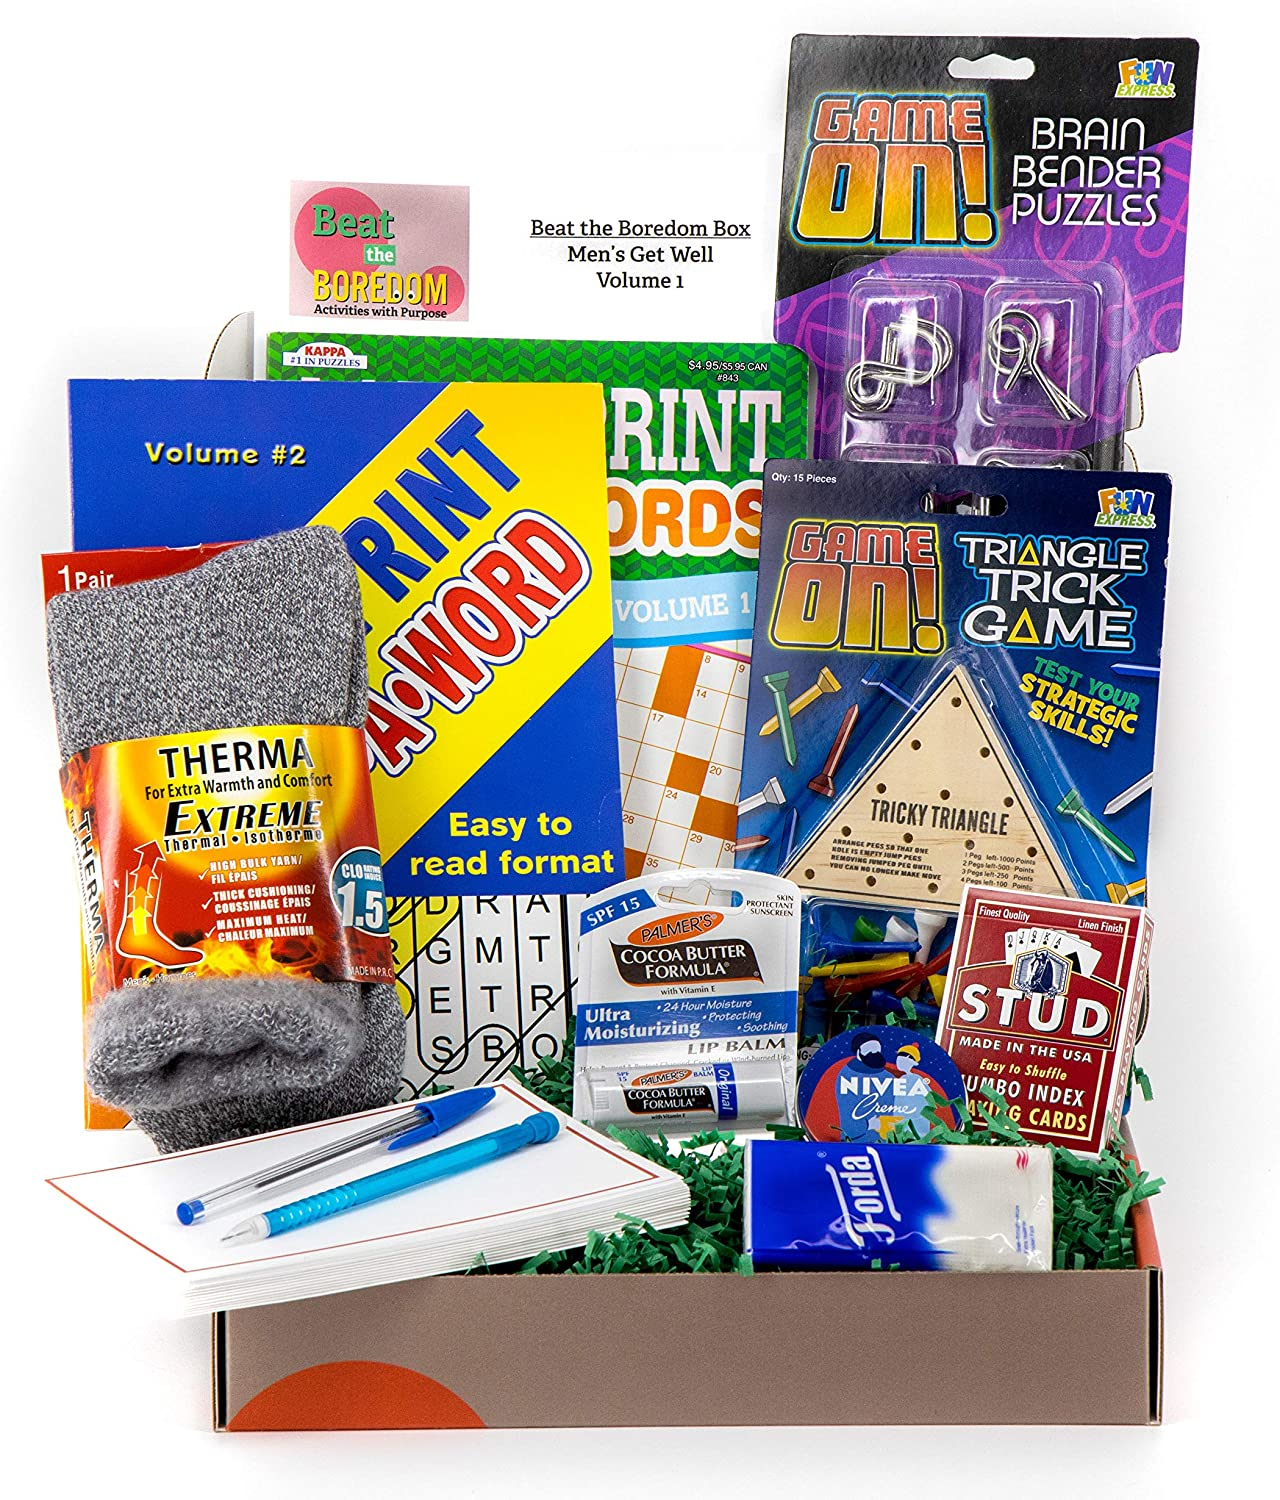 Get Well Soon Gifts for Men Beat the Boredom Box Activities Gift Basket Non Food Tricky Triangle Game Metal Brain Benders Crossword and Word Find Playing Cards Thermal Socks Lip Balm Hand Cream Tissue